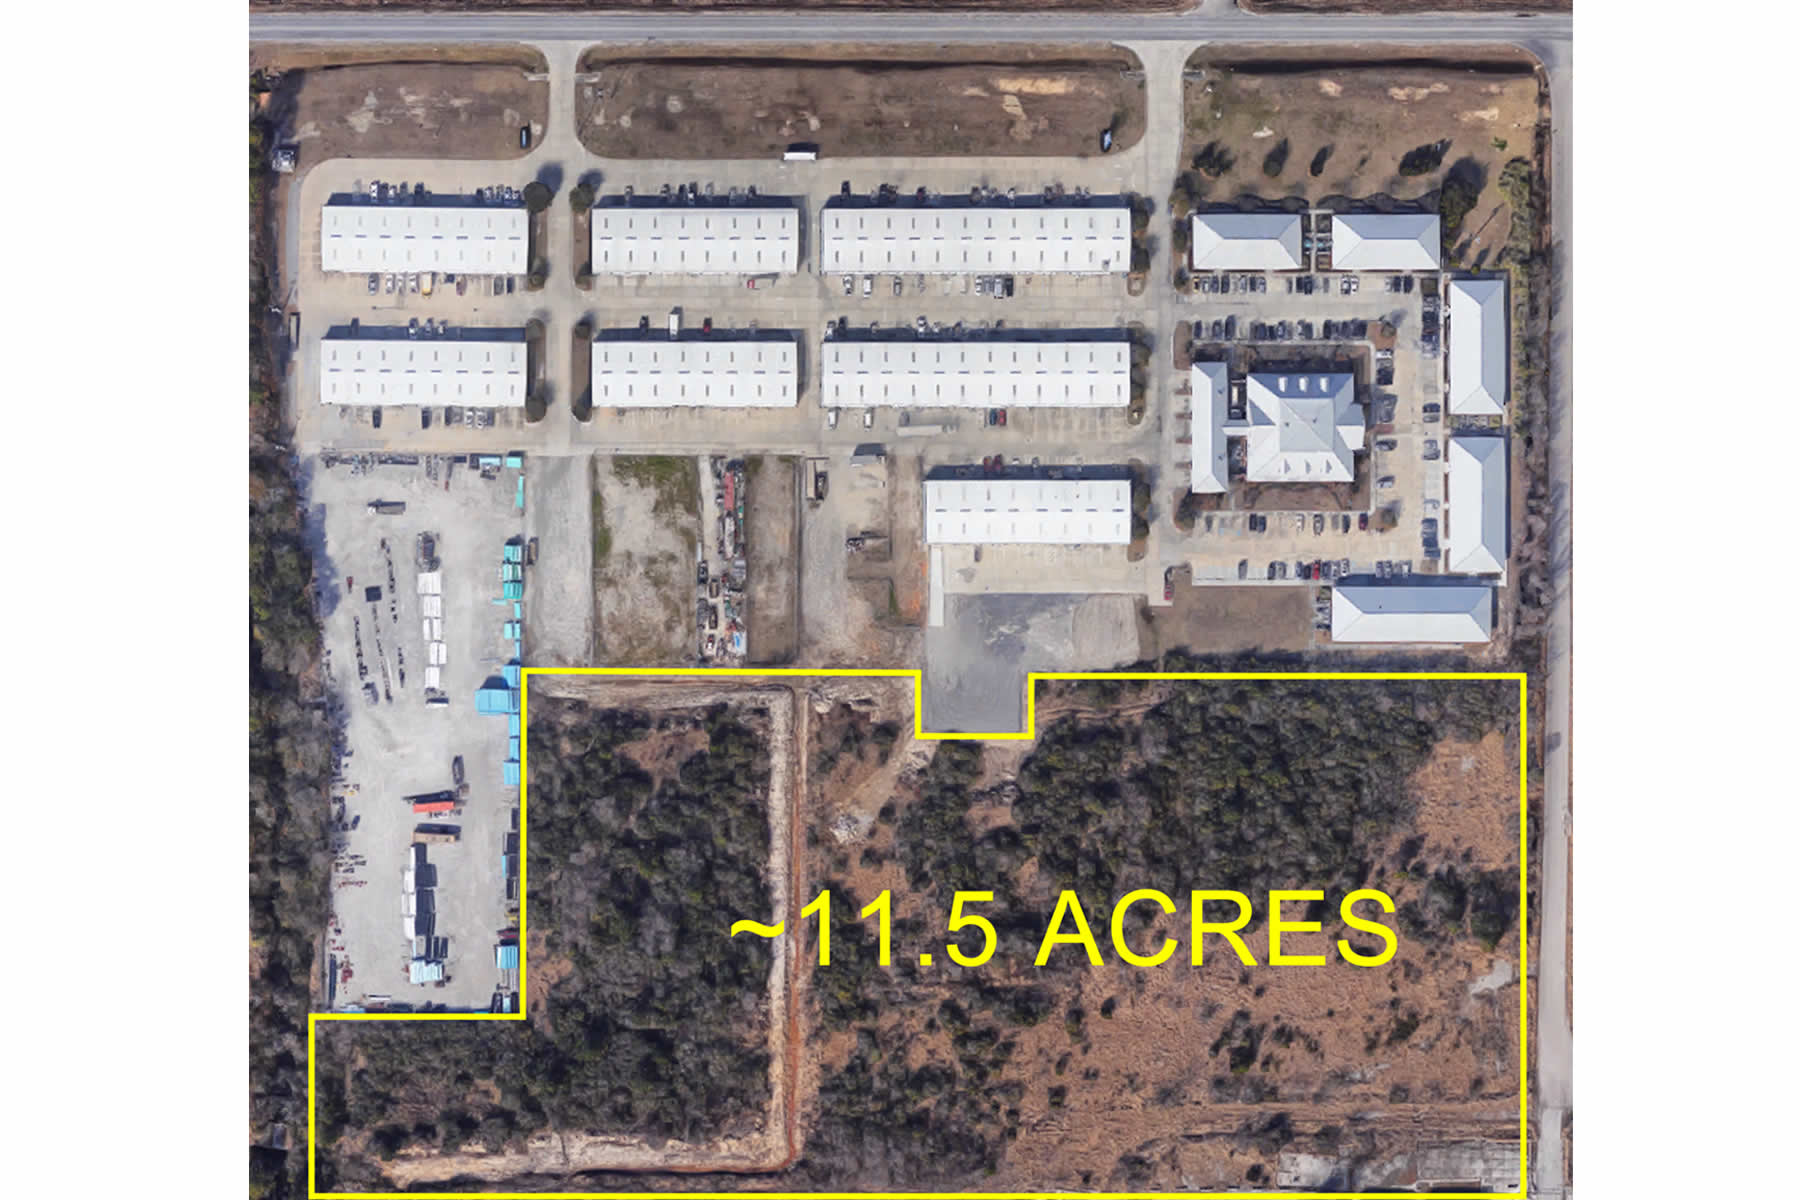 Office building and warehouse building development opportunities in Gulfport, MS